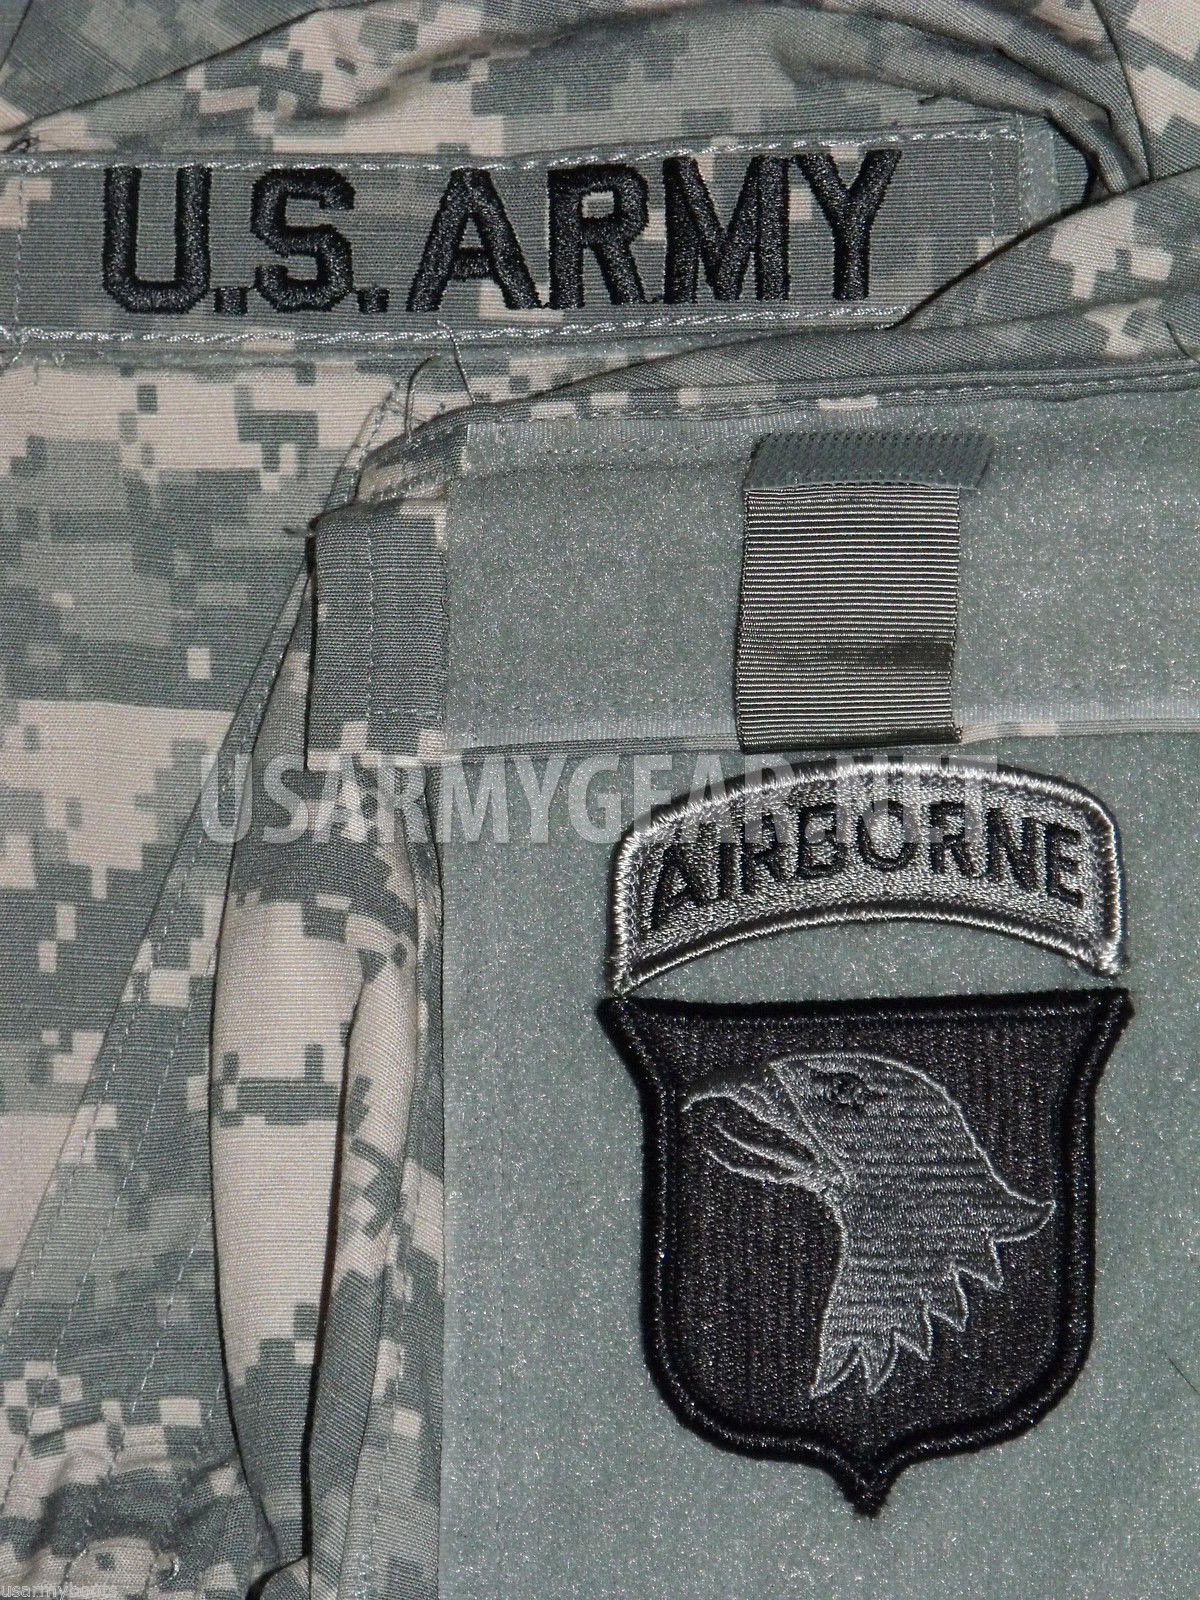 new 101st airborne division acu velcro patch set us army